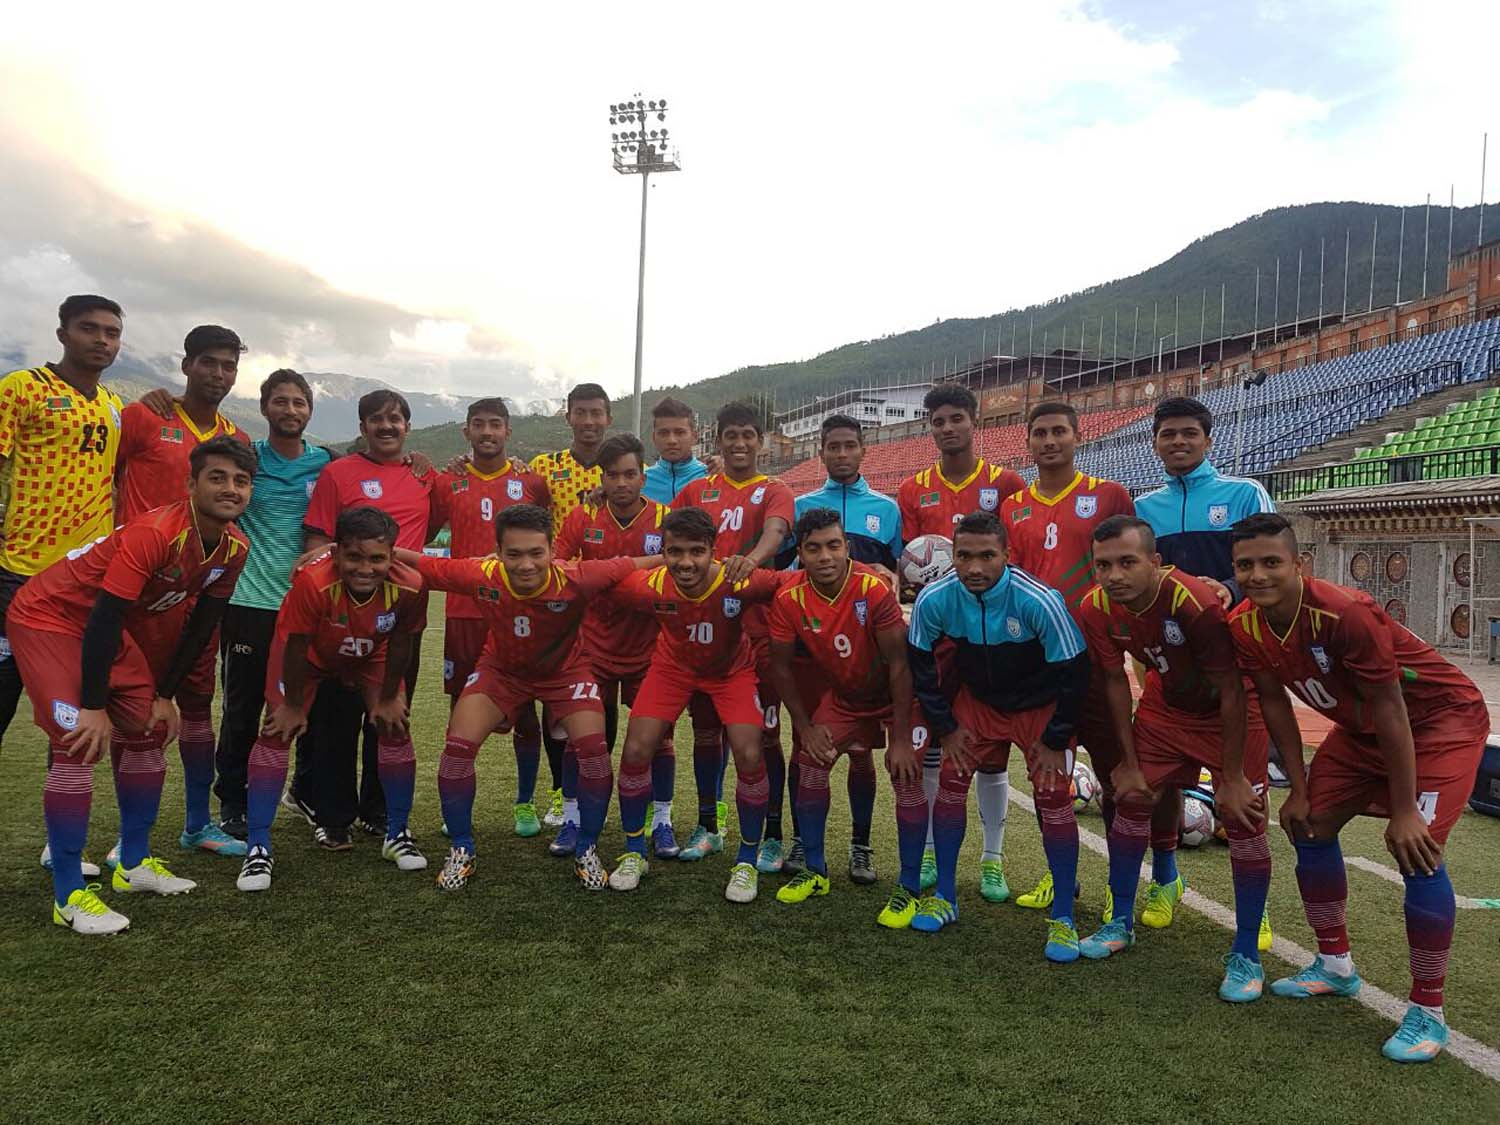 Members of Bangladesh Under-18 National Football team pose for photograph at Thimpu, the capital city of Bhutan on Saturday.